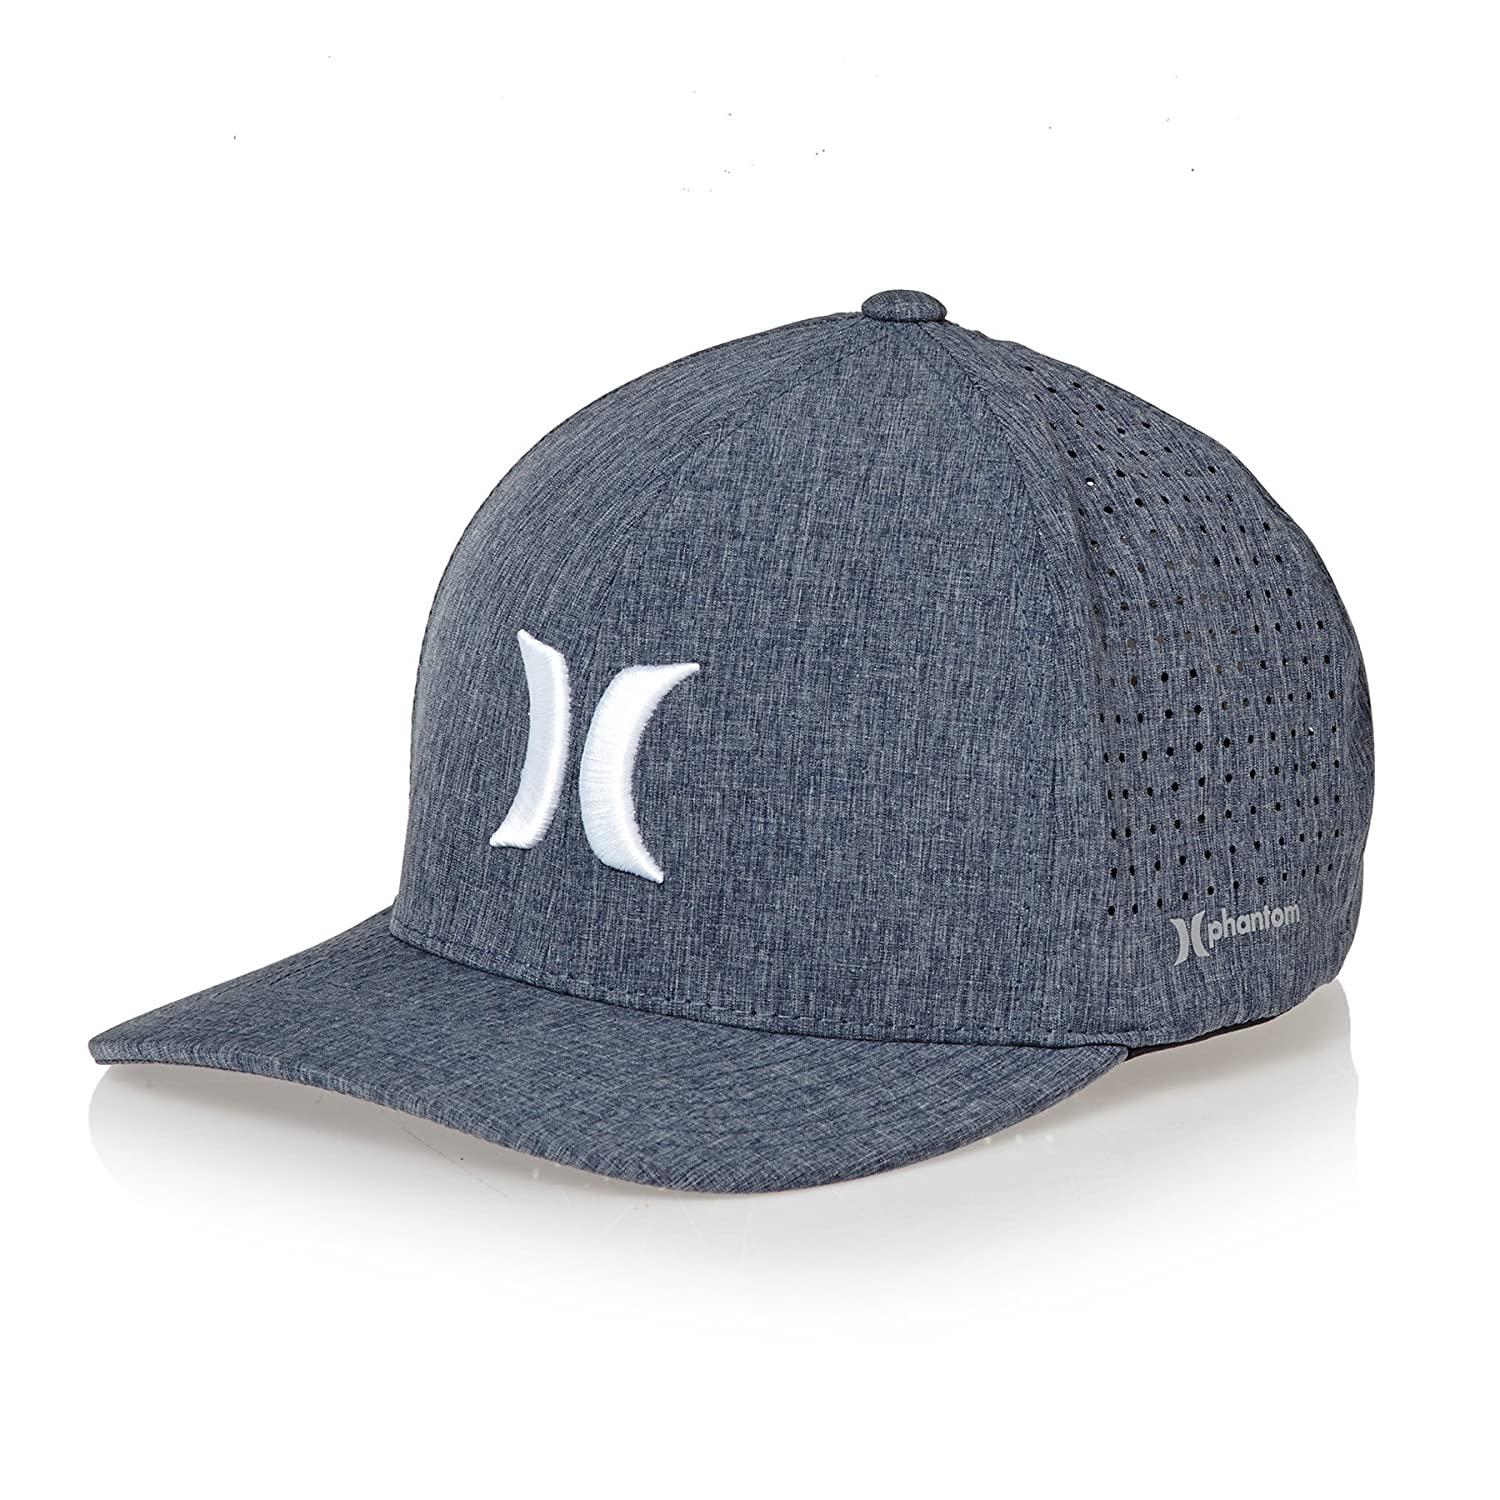 fe62f2289478a Hurley Hats Phantom 4.0 Baseball Cap - Heather Grey  Amazon.co.uk  Clothing